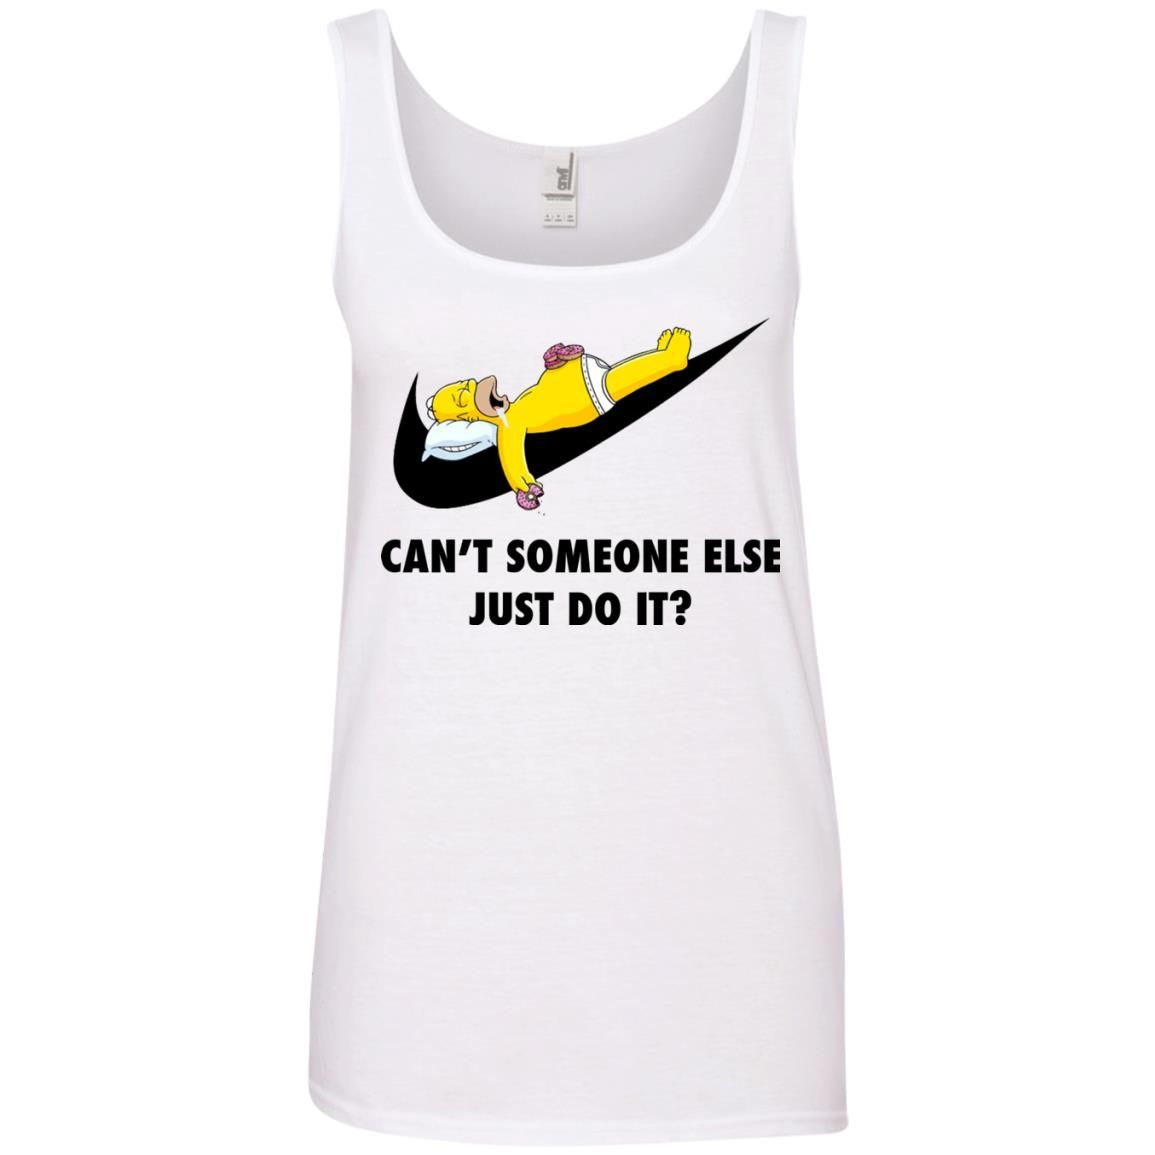 image 1411 - The Simpsons: Can't someone eles just do it shirt, tank, hoodie